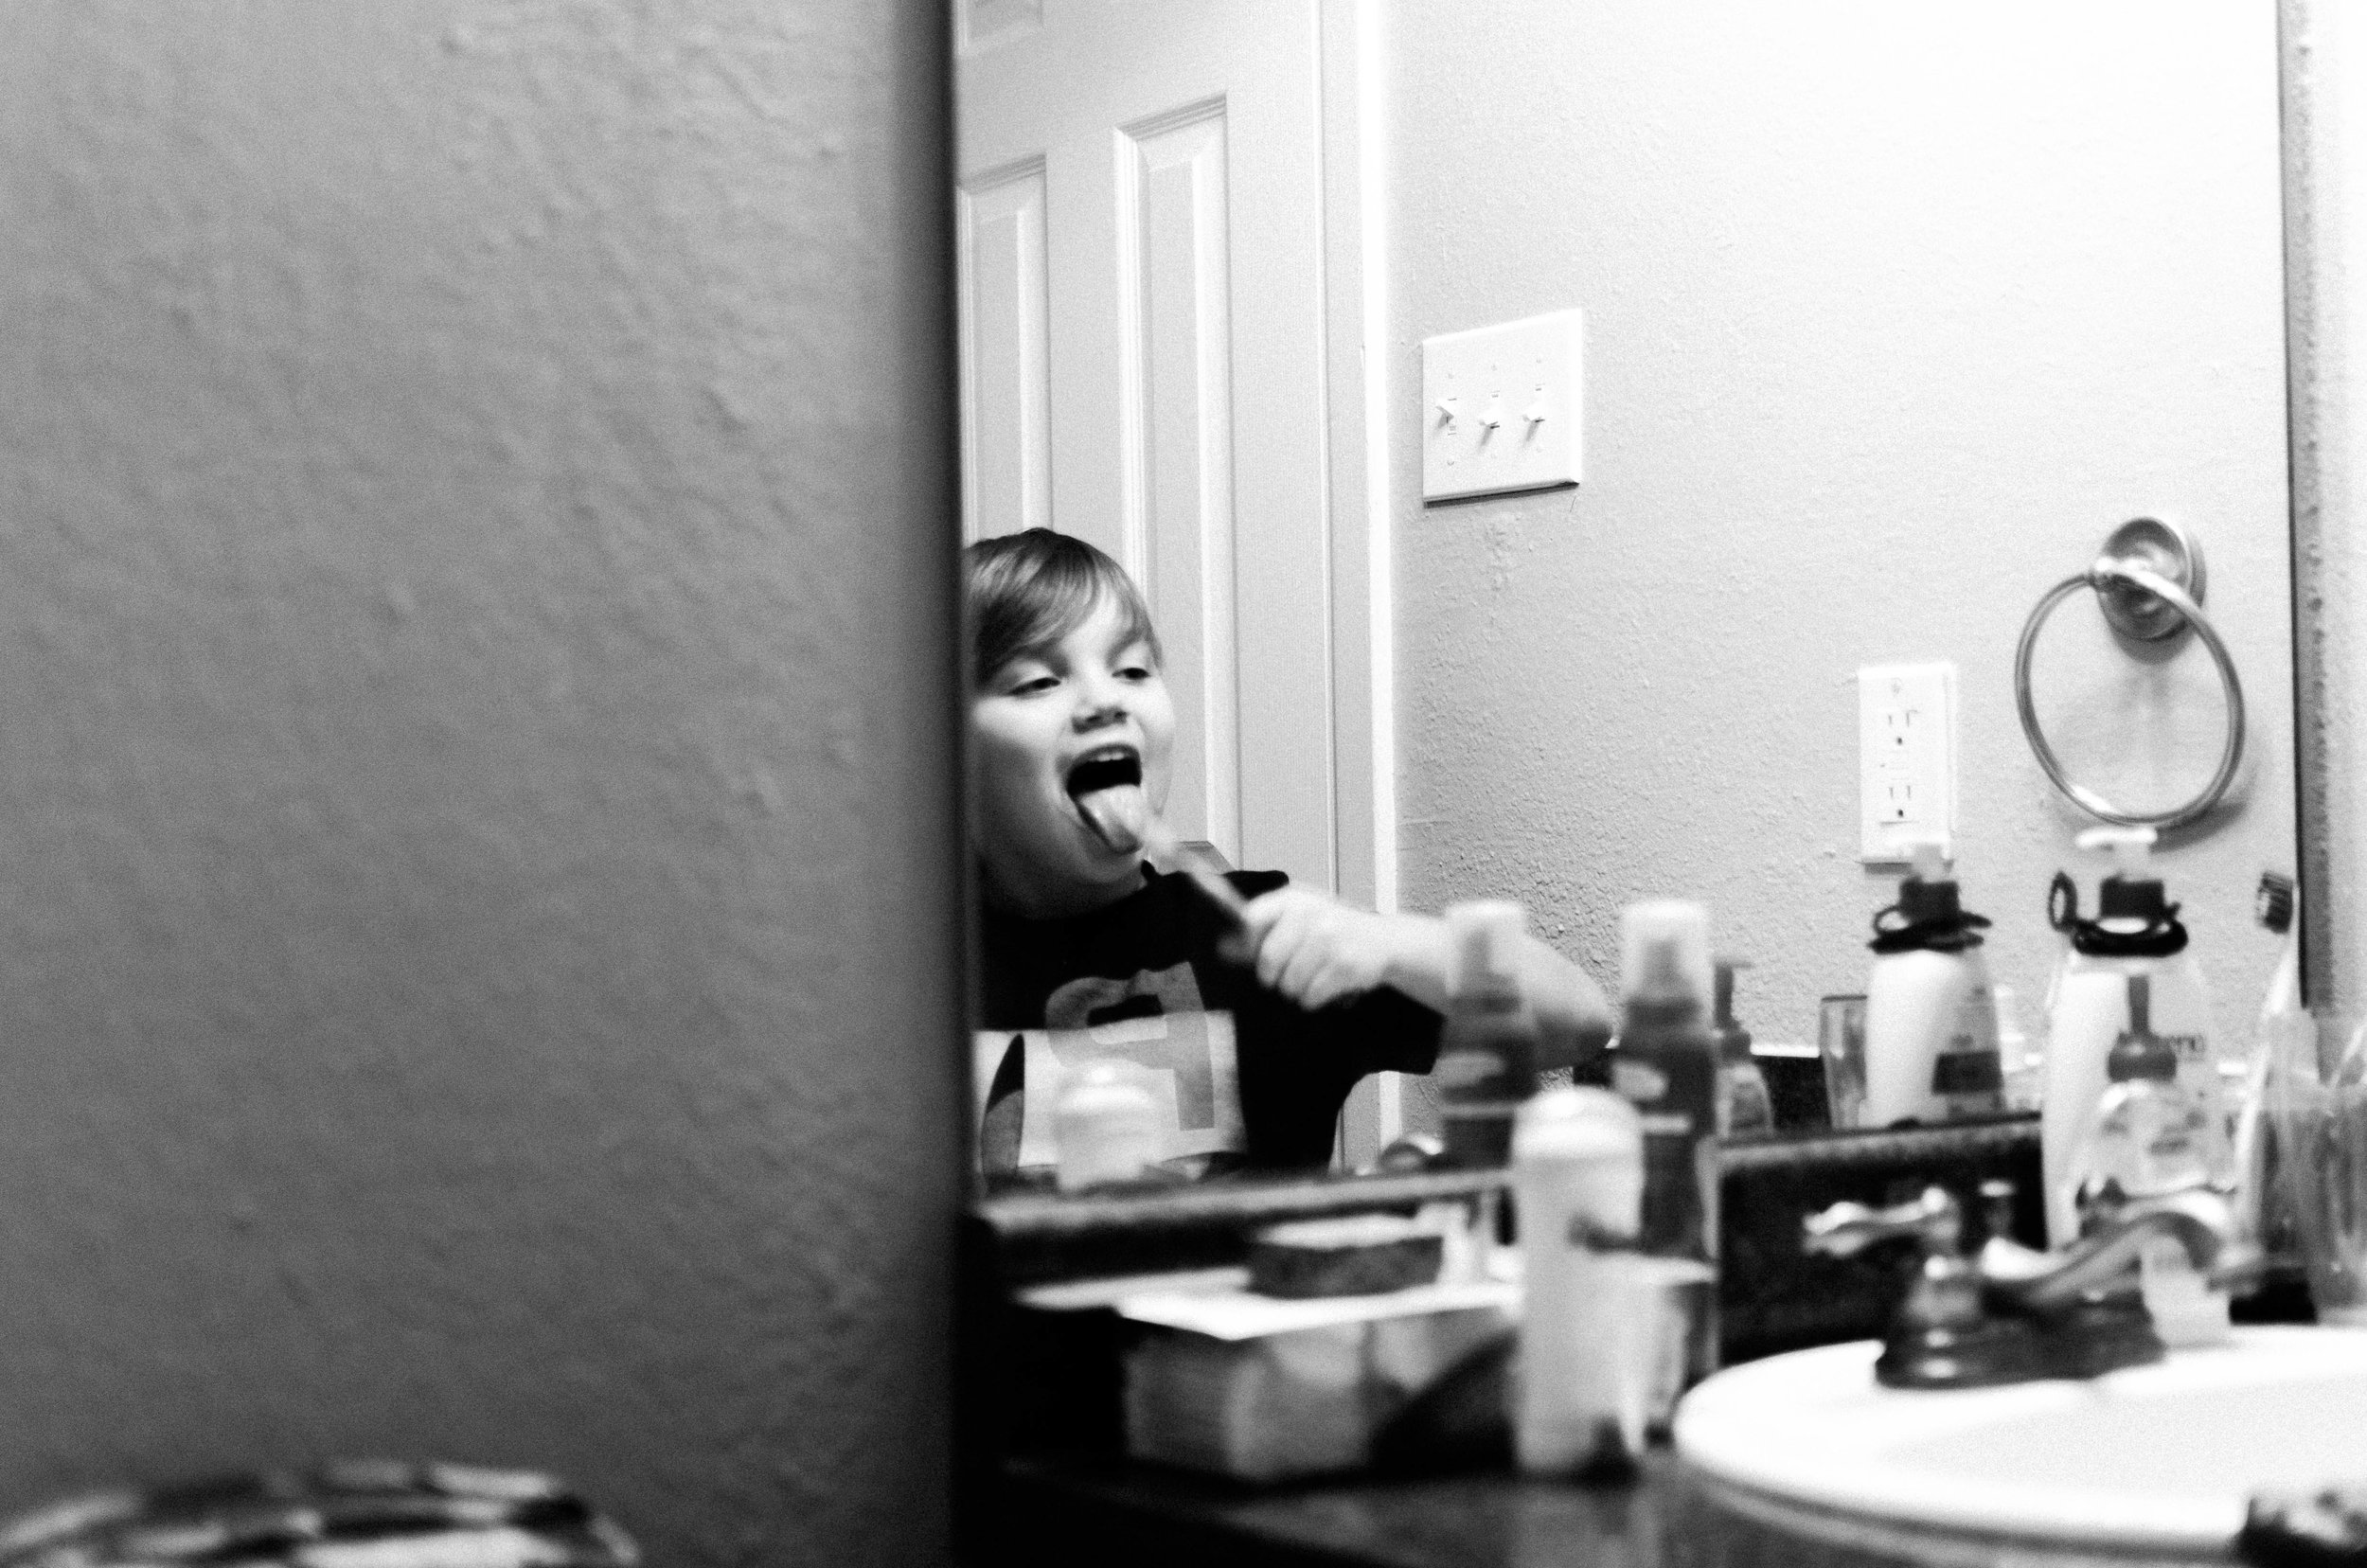 samantha whitford photography austin texas photographer (11).jpg